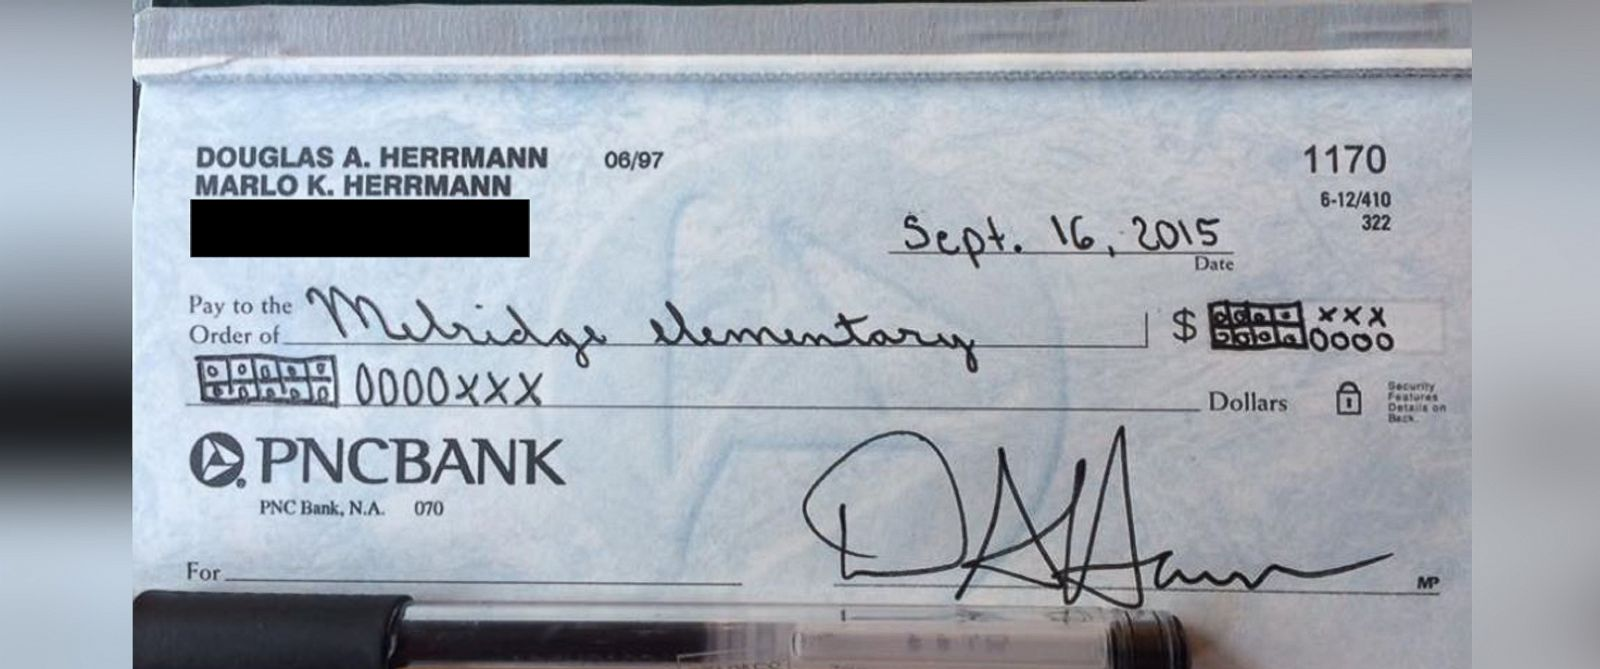 PHOTO: Doug Herrmann wrote a check to his sons school using the common core teaching strategy.